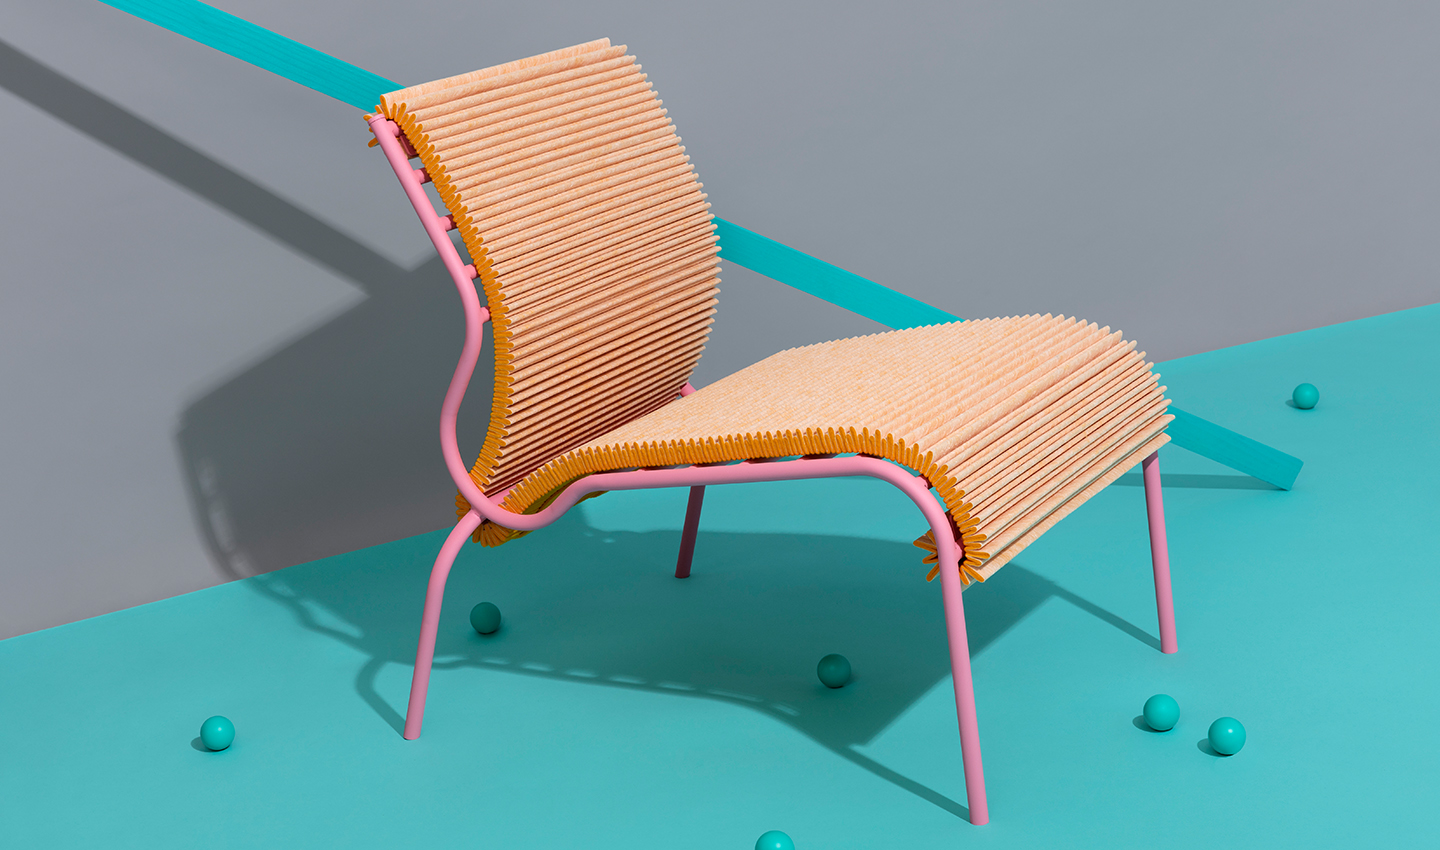 PLEATED SEAT BY JORIS DE GROOT